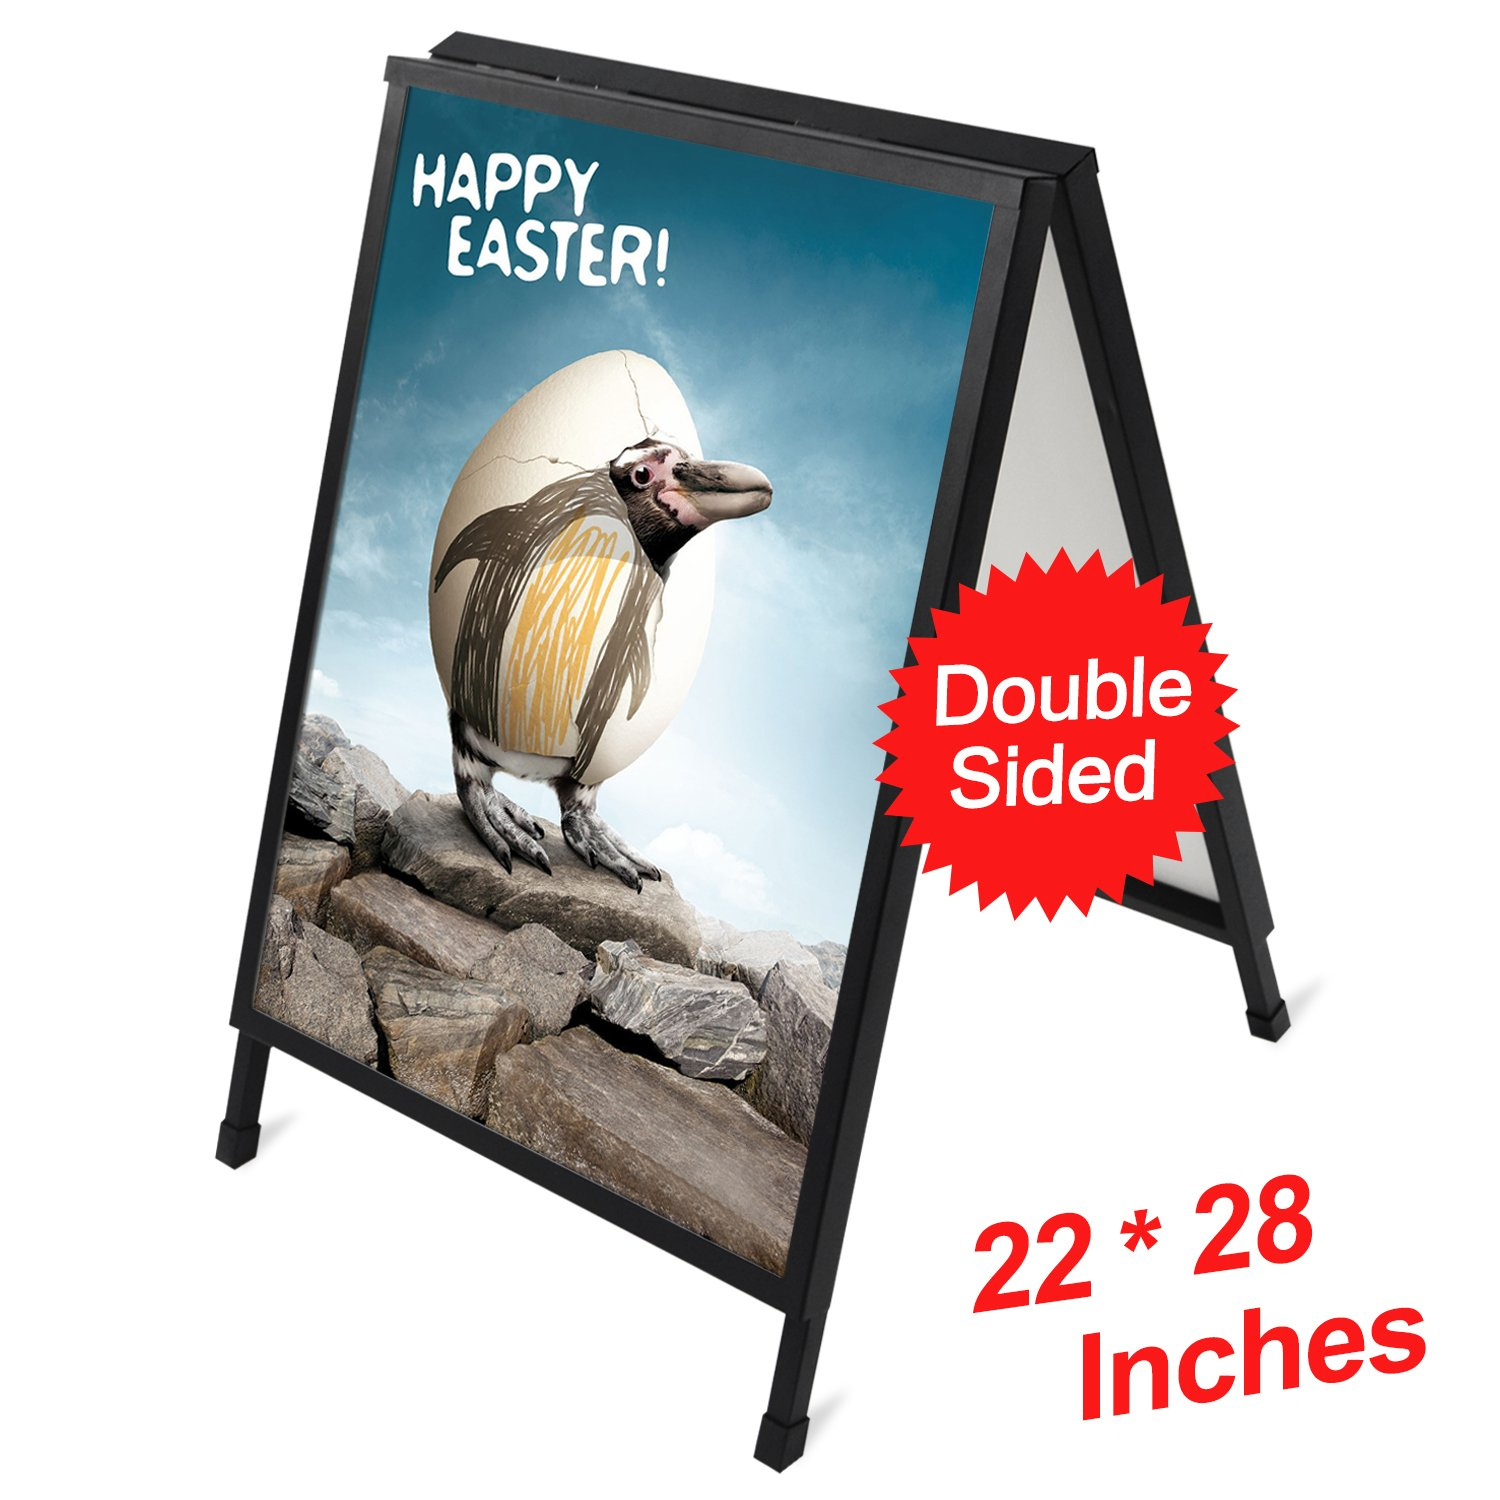 T-SIGN 22 x 28 Inch Slide-in Folding A-Frame Sidewalk Curb Sign Double-Sided Display, Black Coated Steel Metal, 2 Corrugated Plastic Poster Boards by T-SIGN